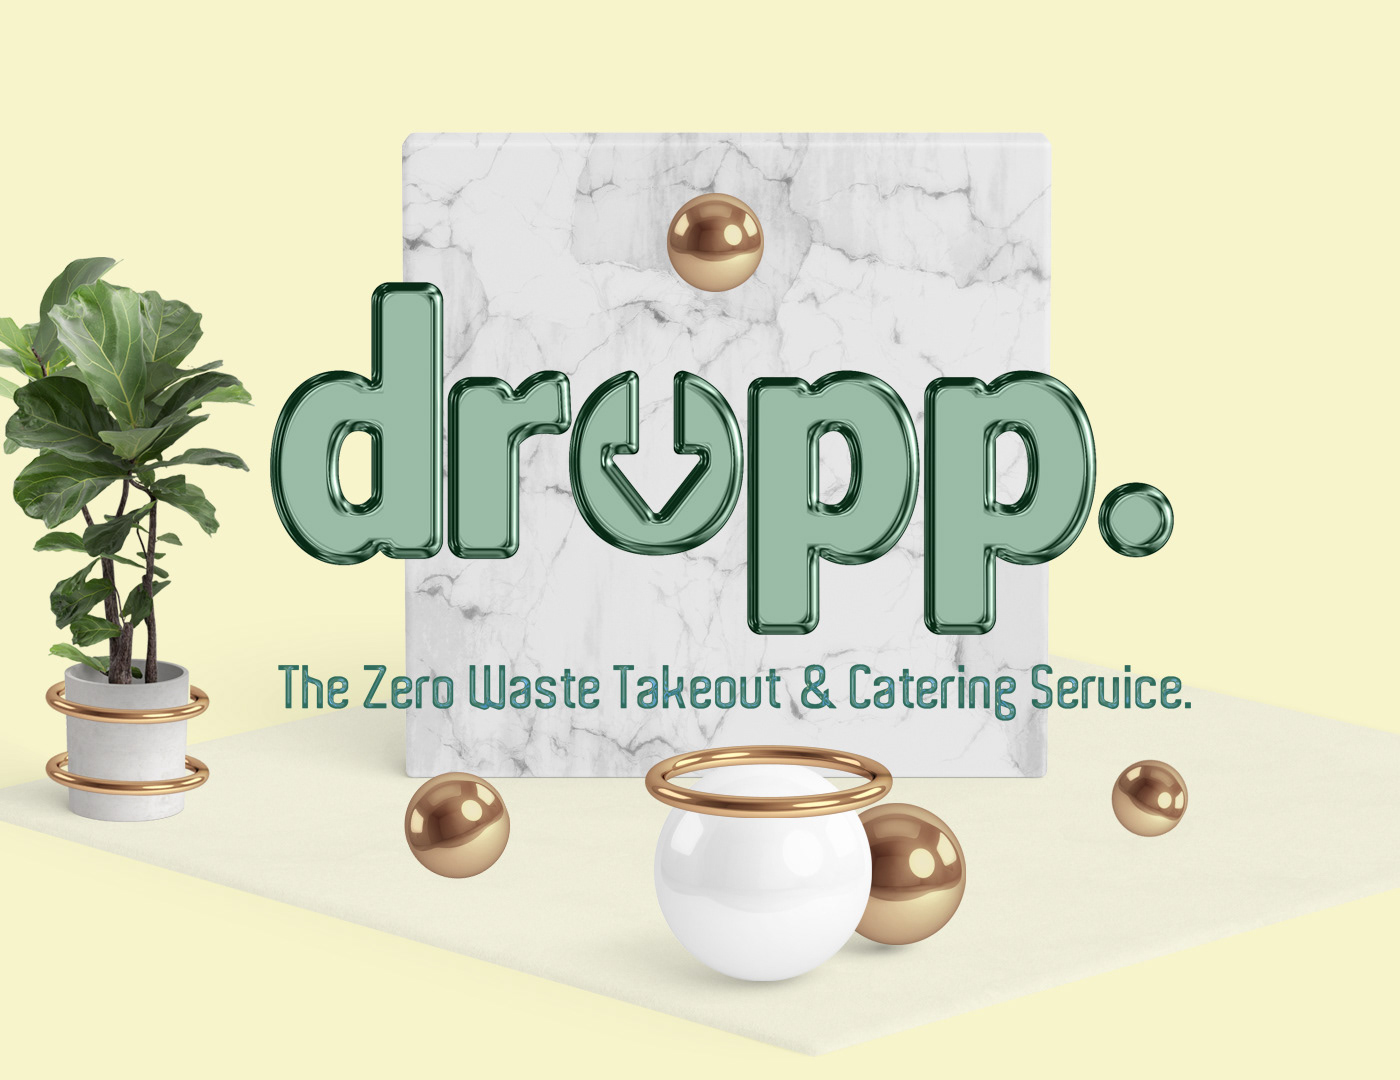 zero waste Sustainability food delivery delivery catering takeout